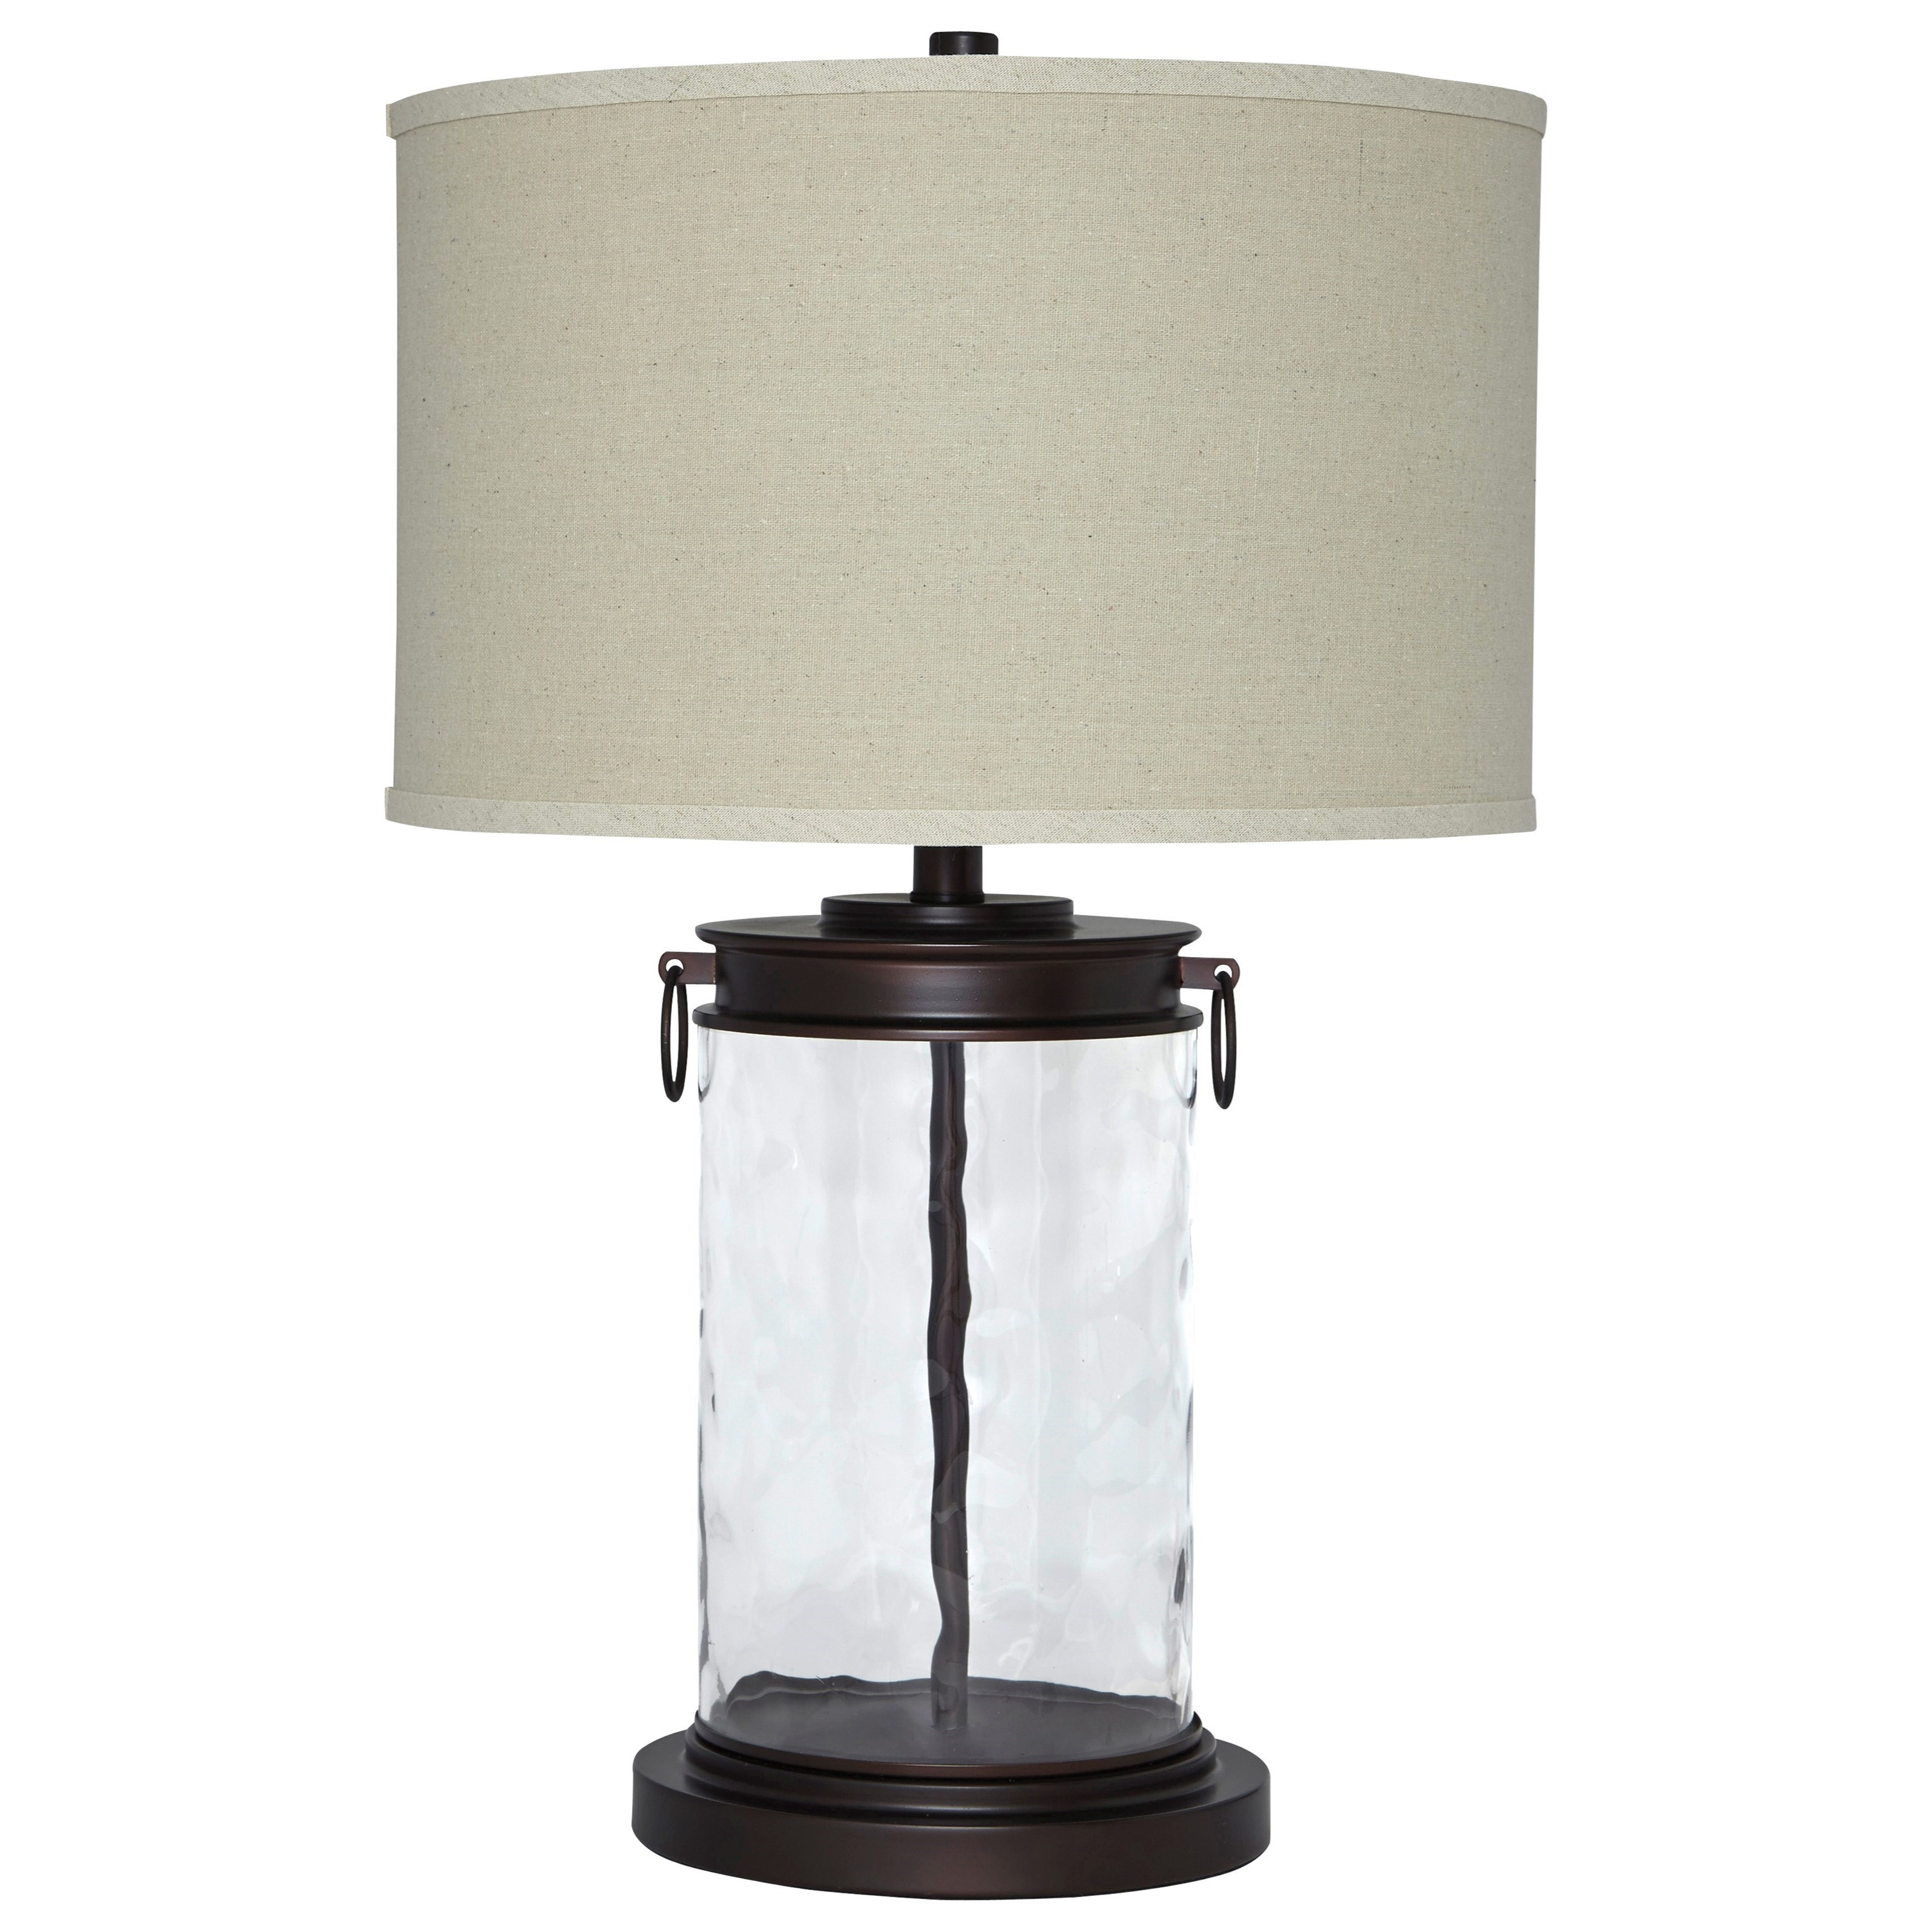 Lamps - Vintage Style Tailynn Clear/Bronze Finish Glass Table Lamp by Signature Design by Ashley at Catalog Outlet